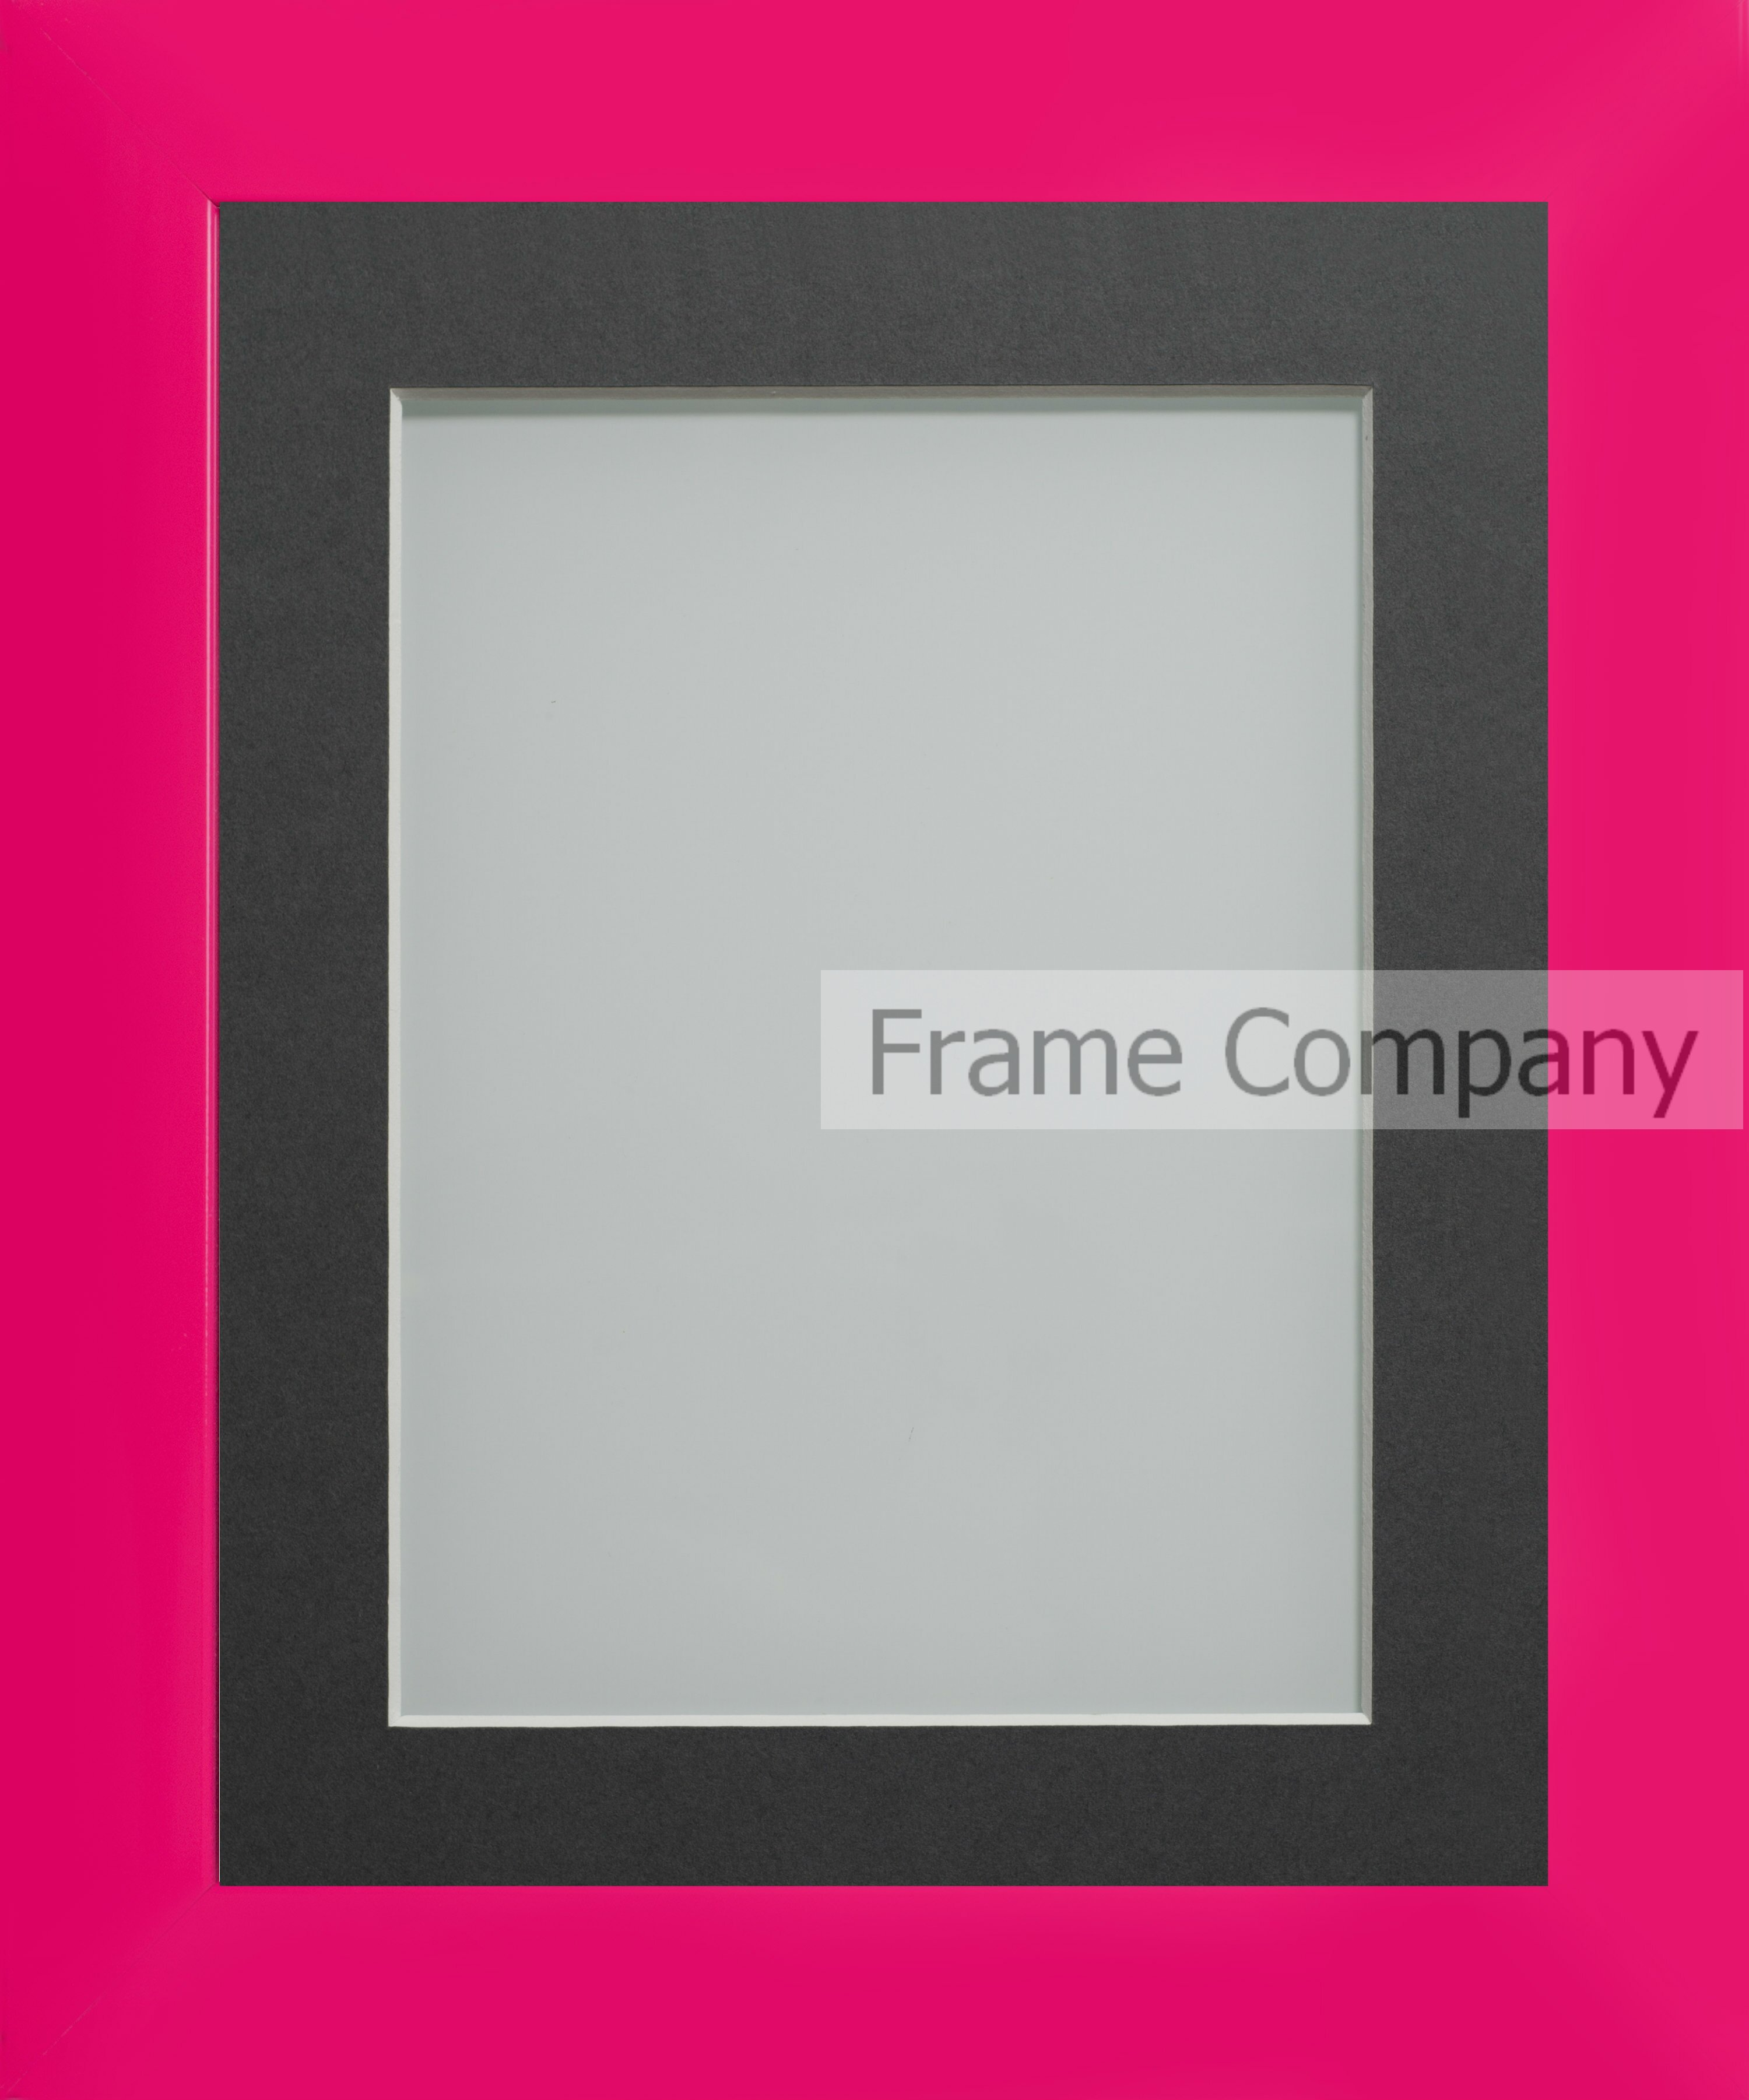 Frame Company Candy Range Hot Pink Picture Photo Frames with Choice ...